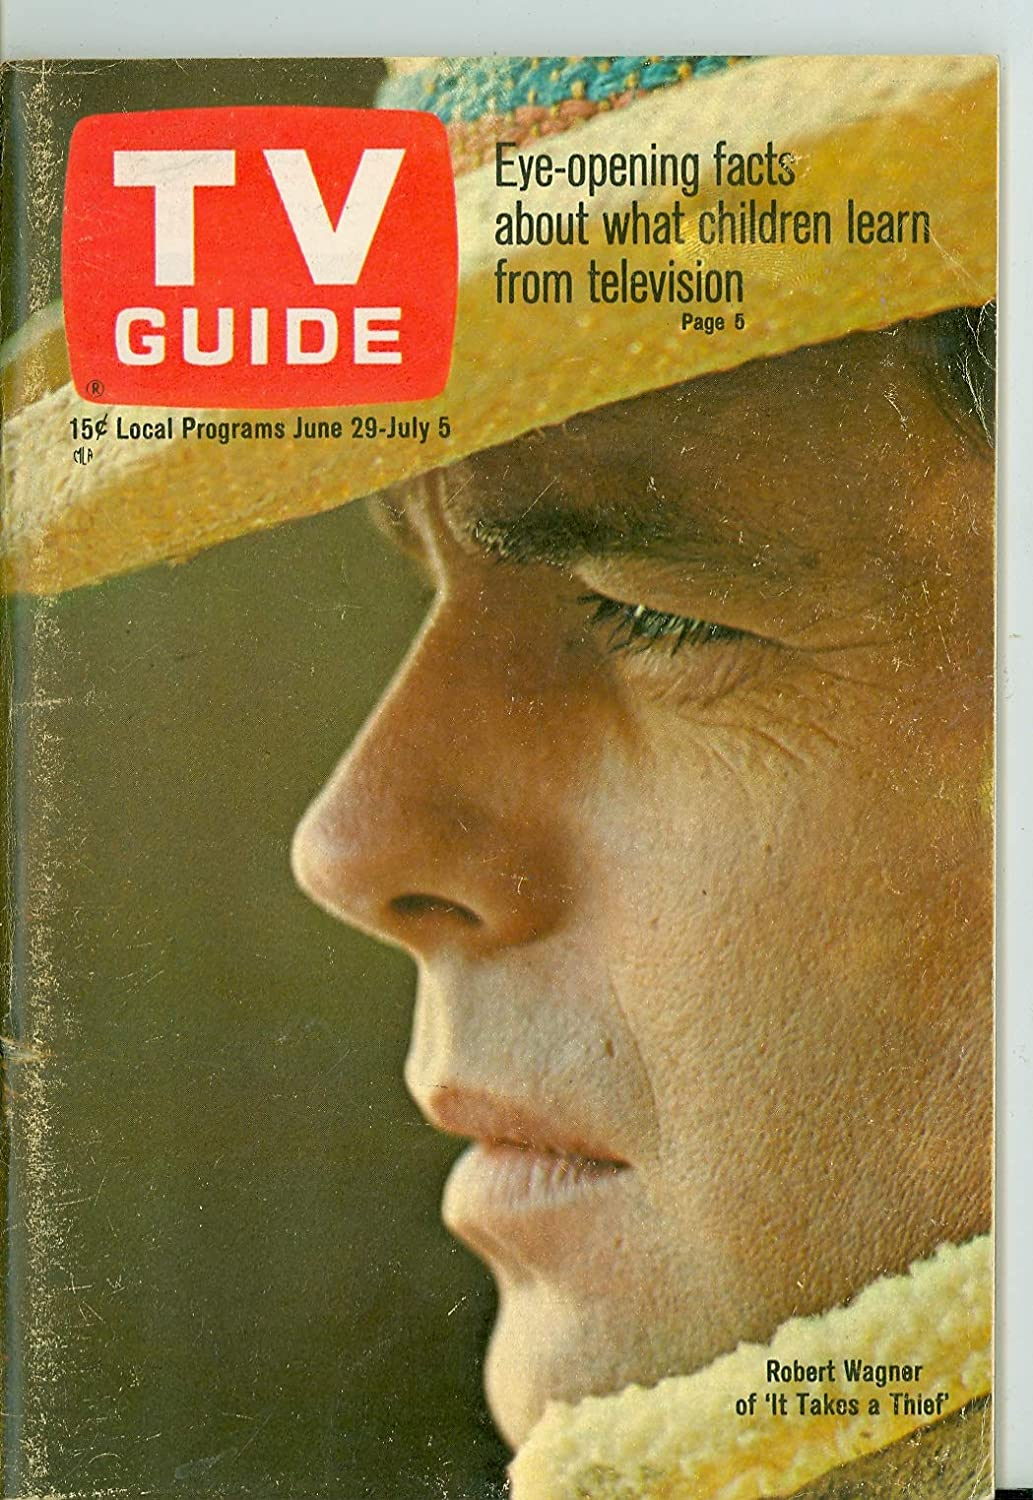 1968 Clearance SALE! Limited time! TV Guide Jun 29 Robert Wagner - of Takes Thief a Tulsa Mall it Colorad